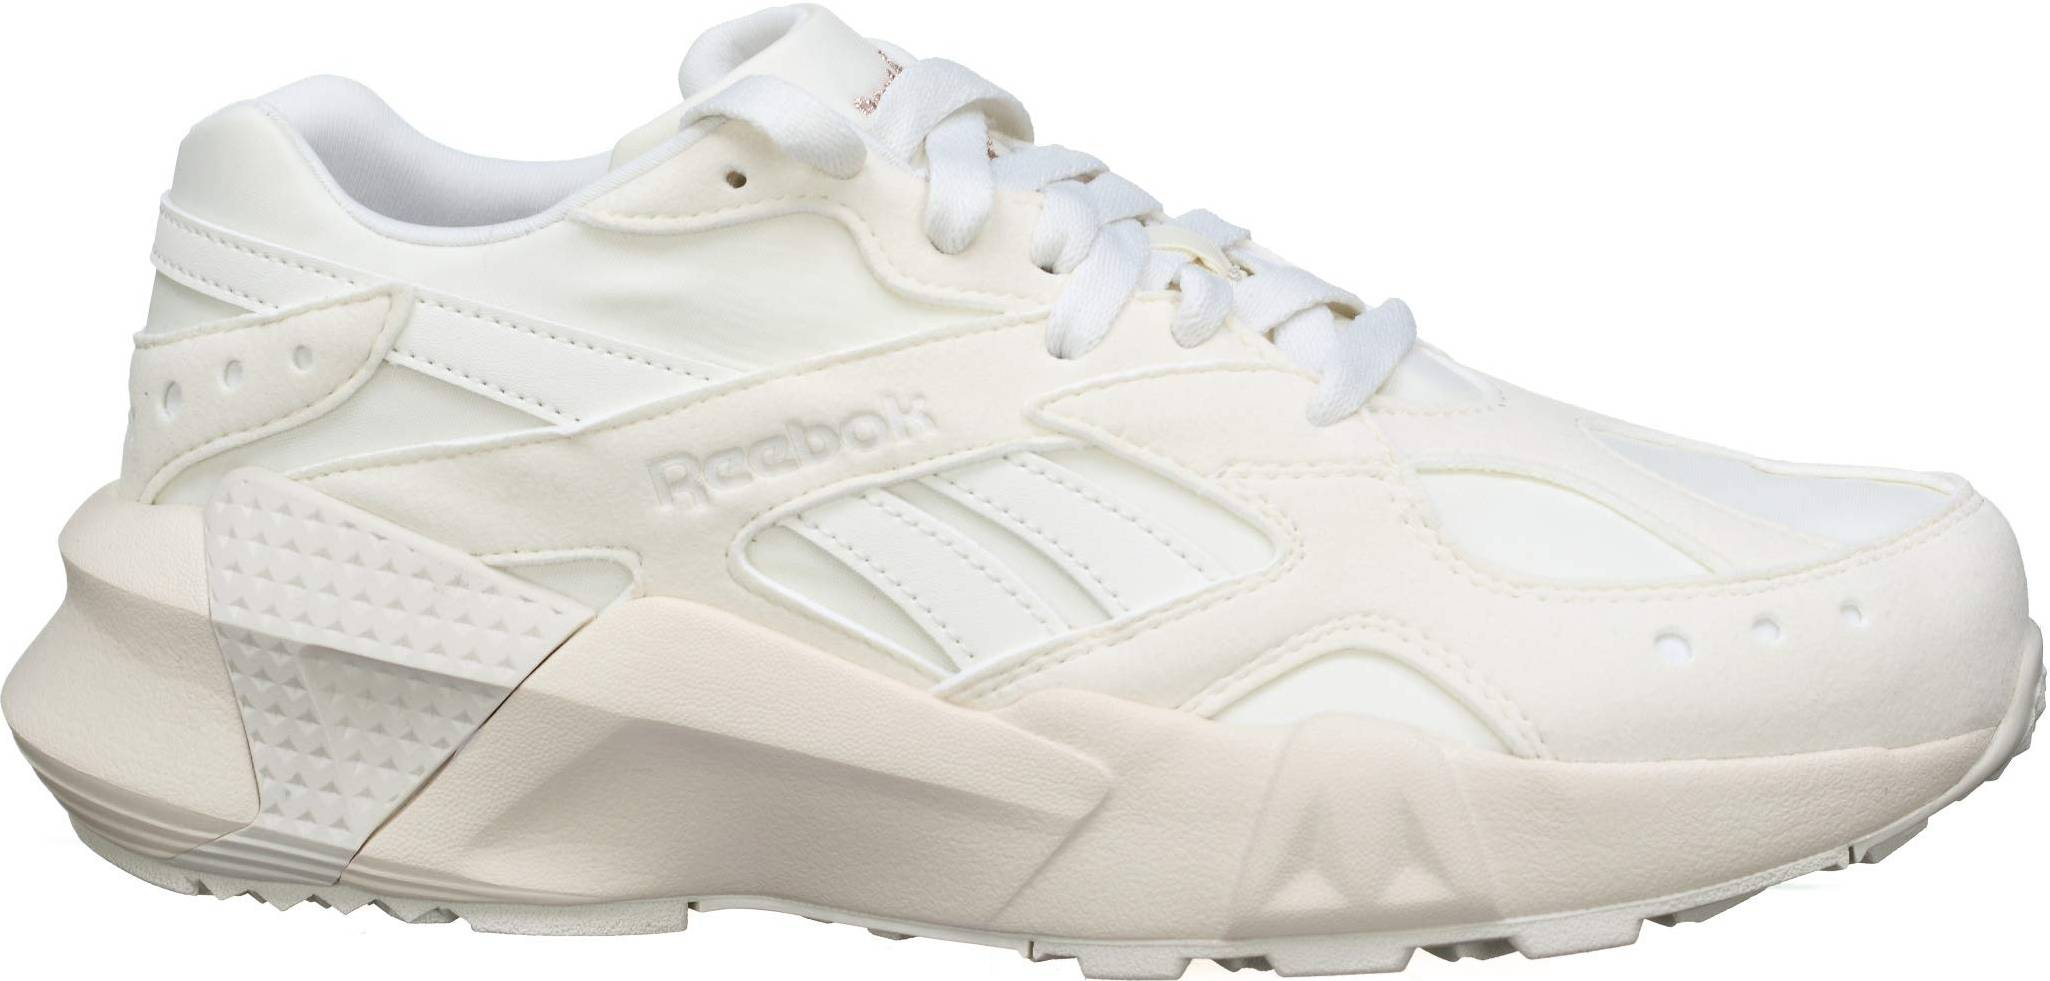 Anzai Remo cebra  Only $80 + Review of Reebok Aztrek Double | RunRepeat